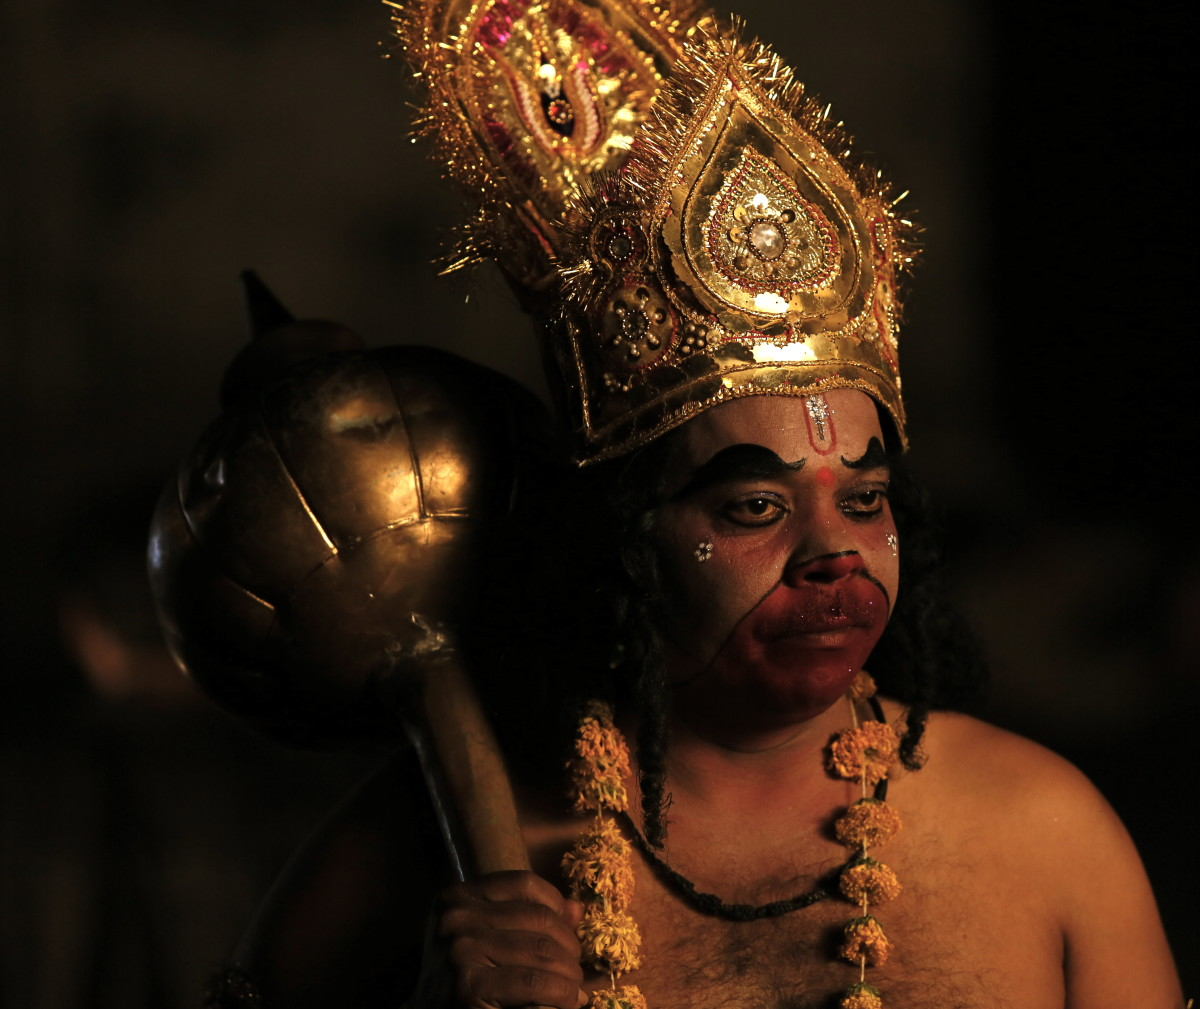 An actor dressed as Hanuman